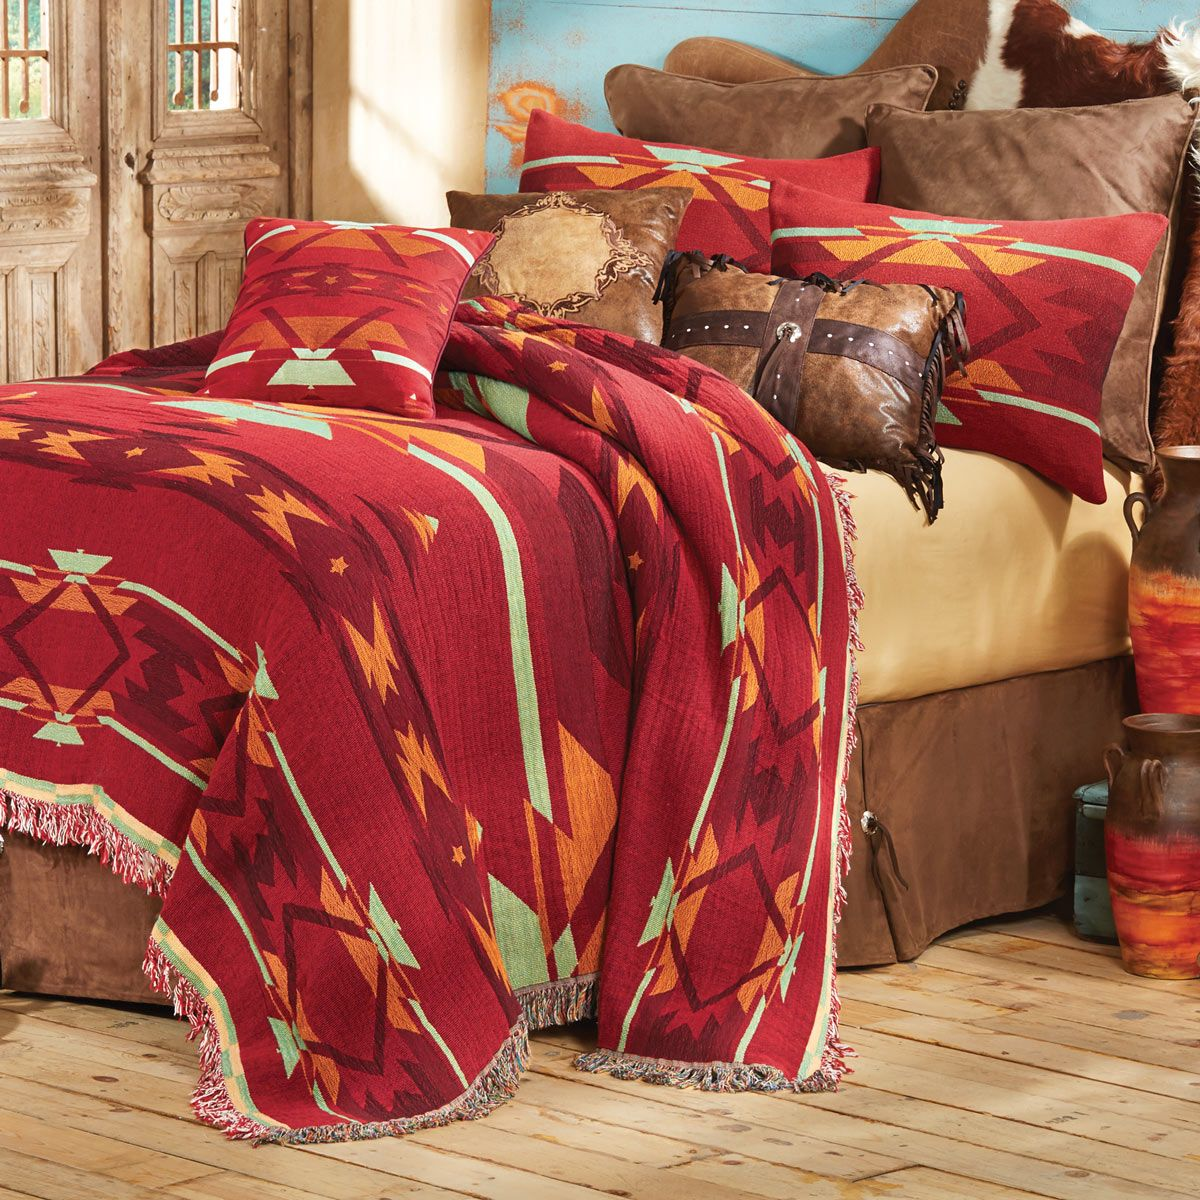 Beautiful Southwestern Flame Tapestry Coverlet   Queen   A Lone Star Western Decor  Exclusive   A Large Scale Geometric Tapestry In Red, Sage, Orange And Cream  Has ...